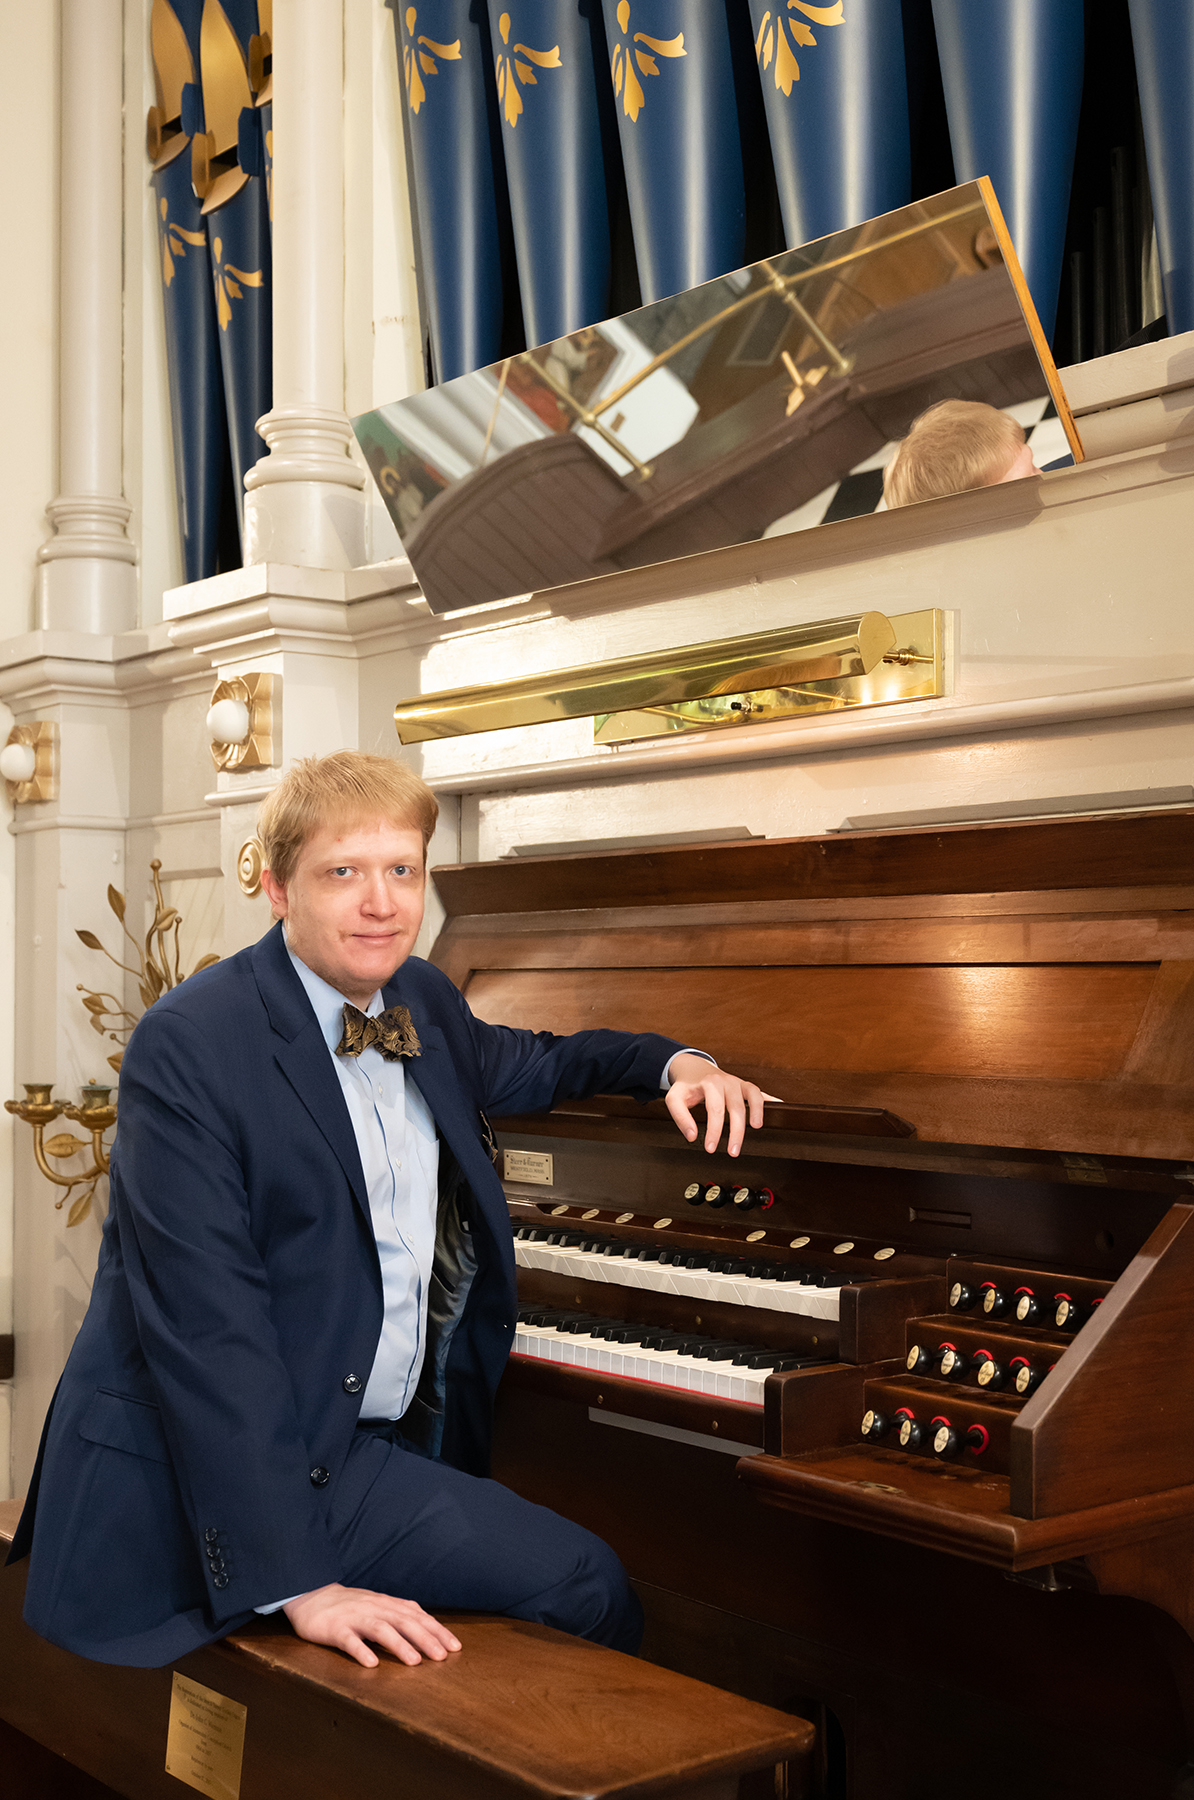 Live Organ Recital with Jay Parrotta, American Guild of Organists Fellow